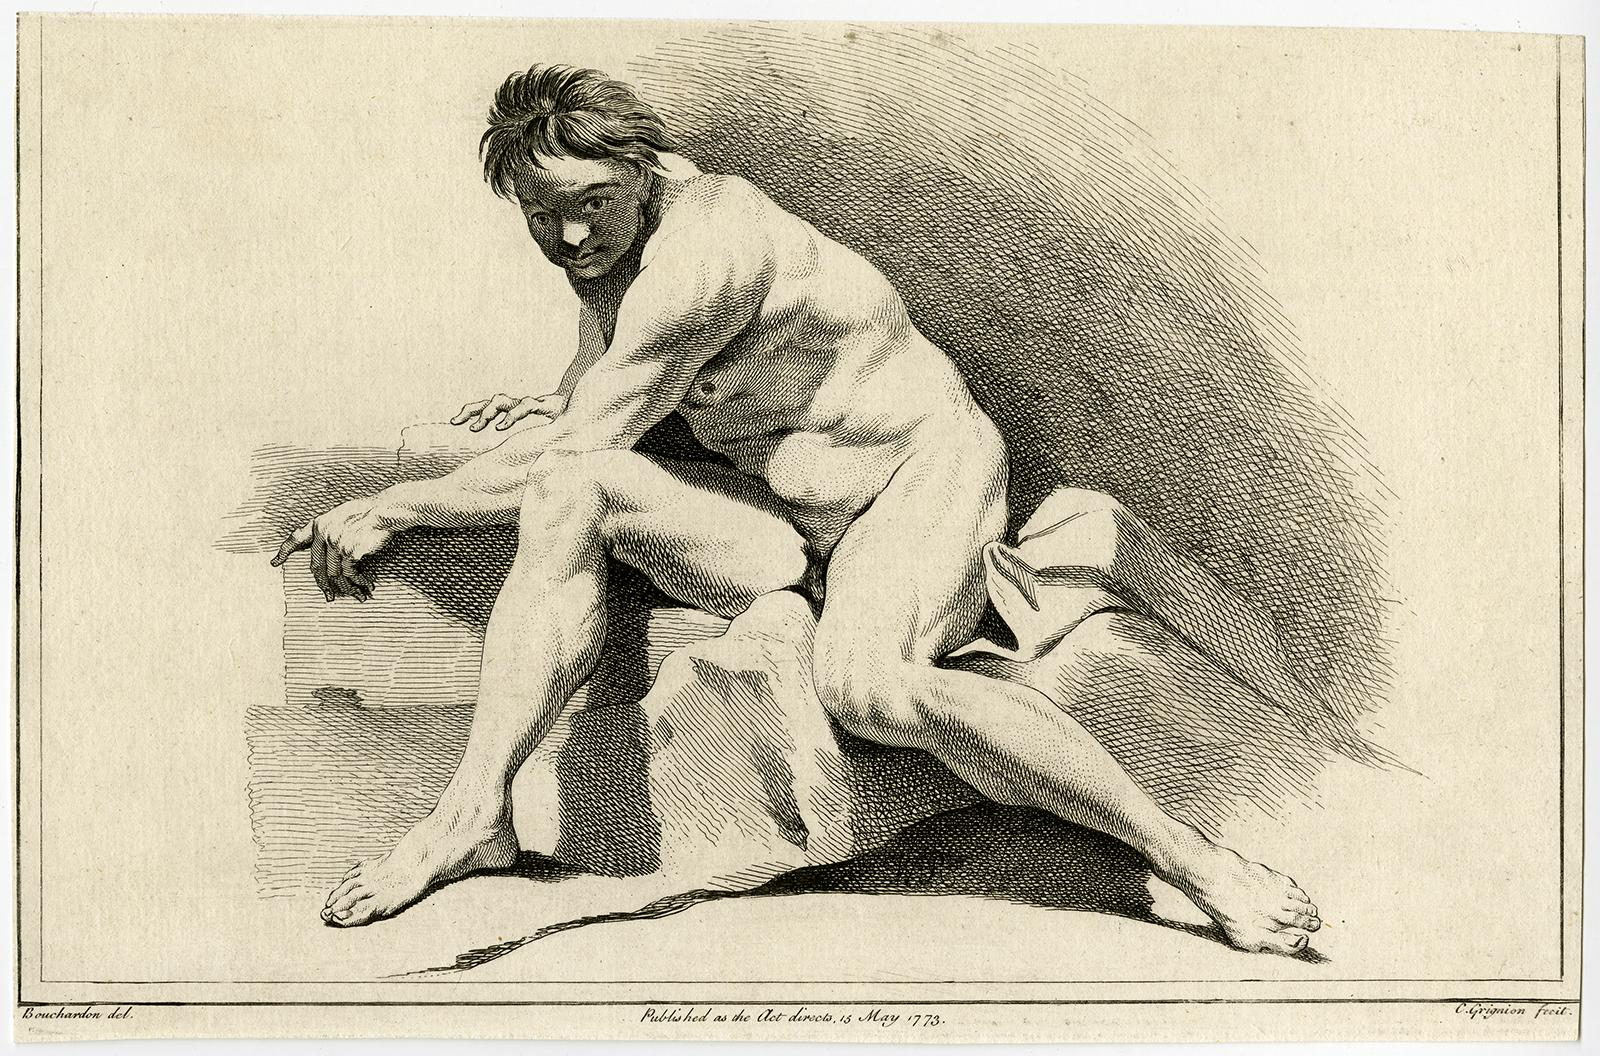 Antique Print-NUDE-MAN-STAIRCASE-CLOTH-Bouchardon-Grignion-1773 Hardcover